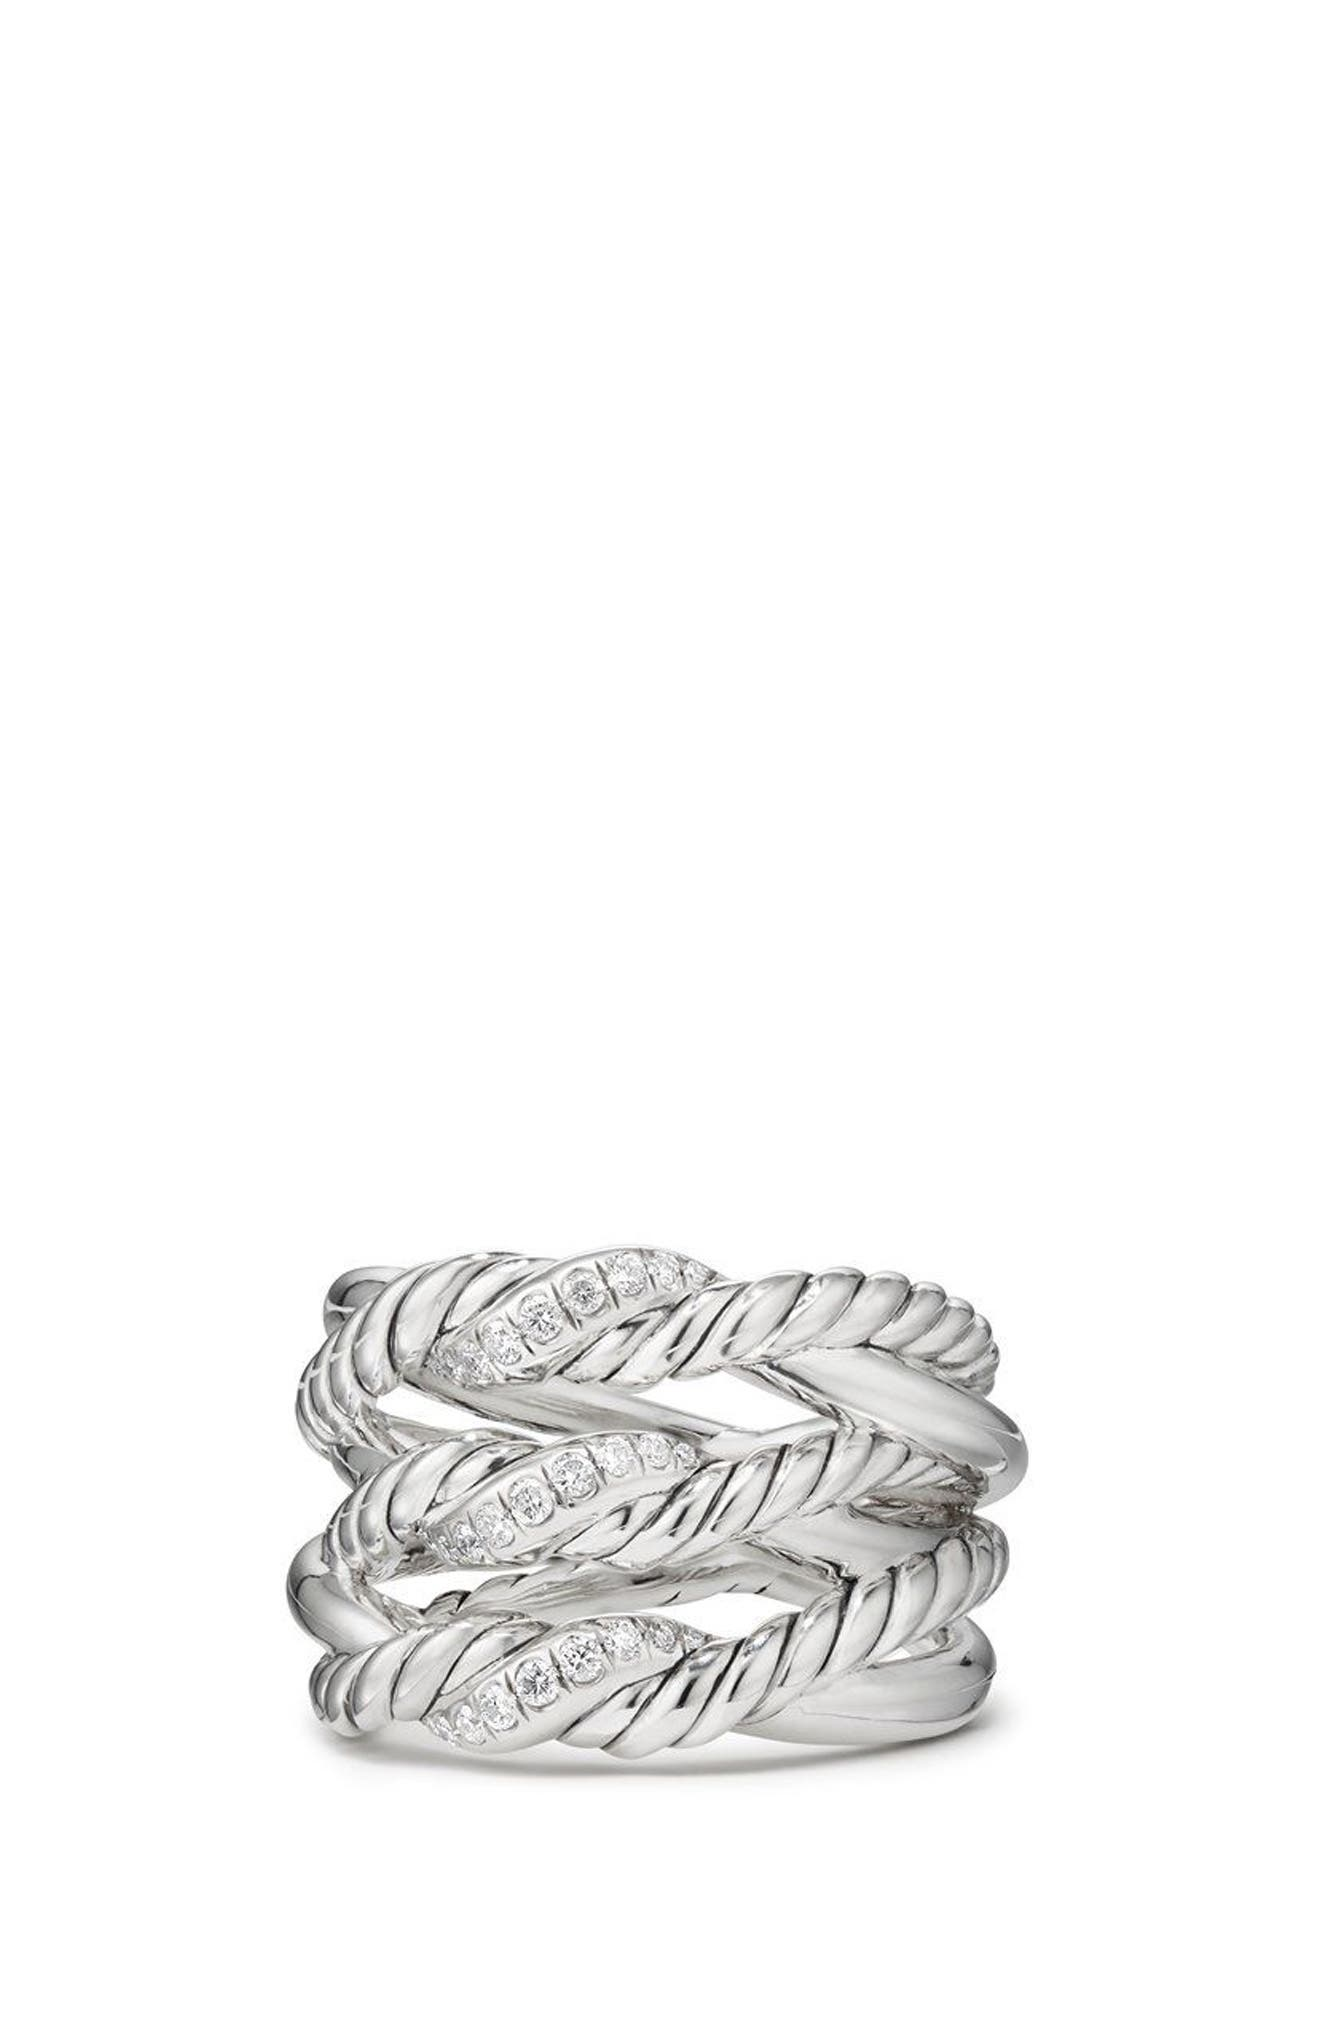 Continuance<sup>®</sup> 3-Row Ring with Diamonds,                             Main thumbnail 1, color,                             Silver/ Diamond